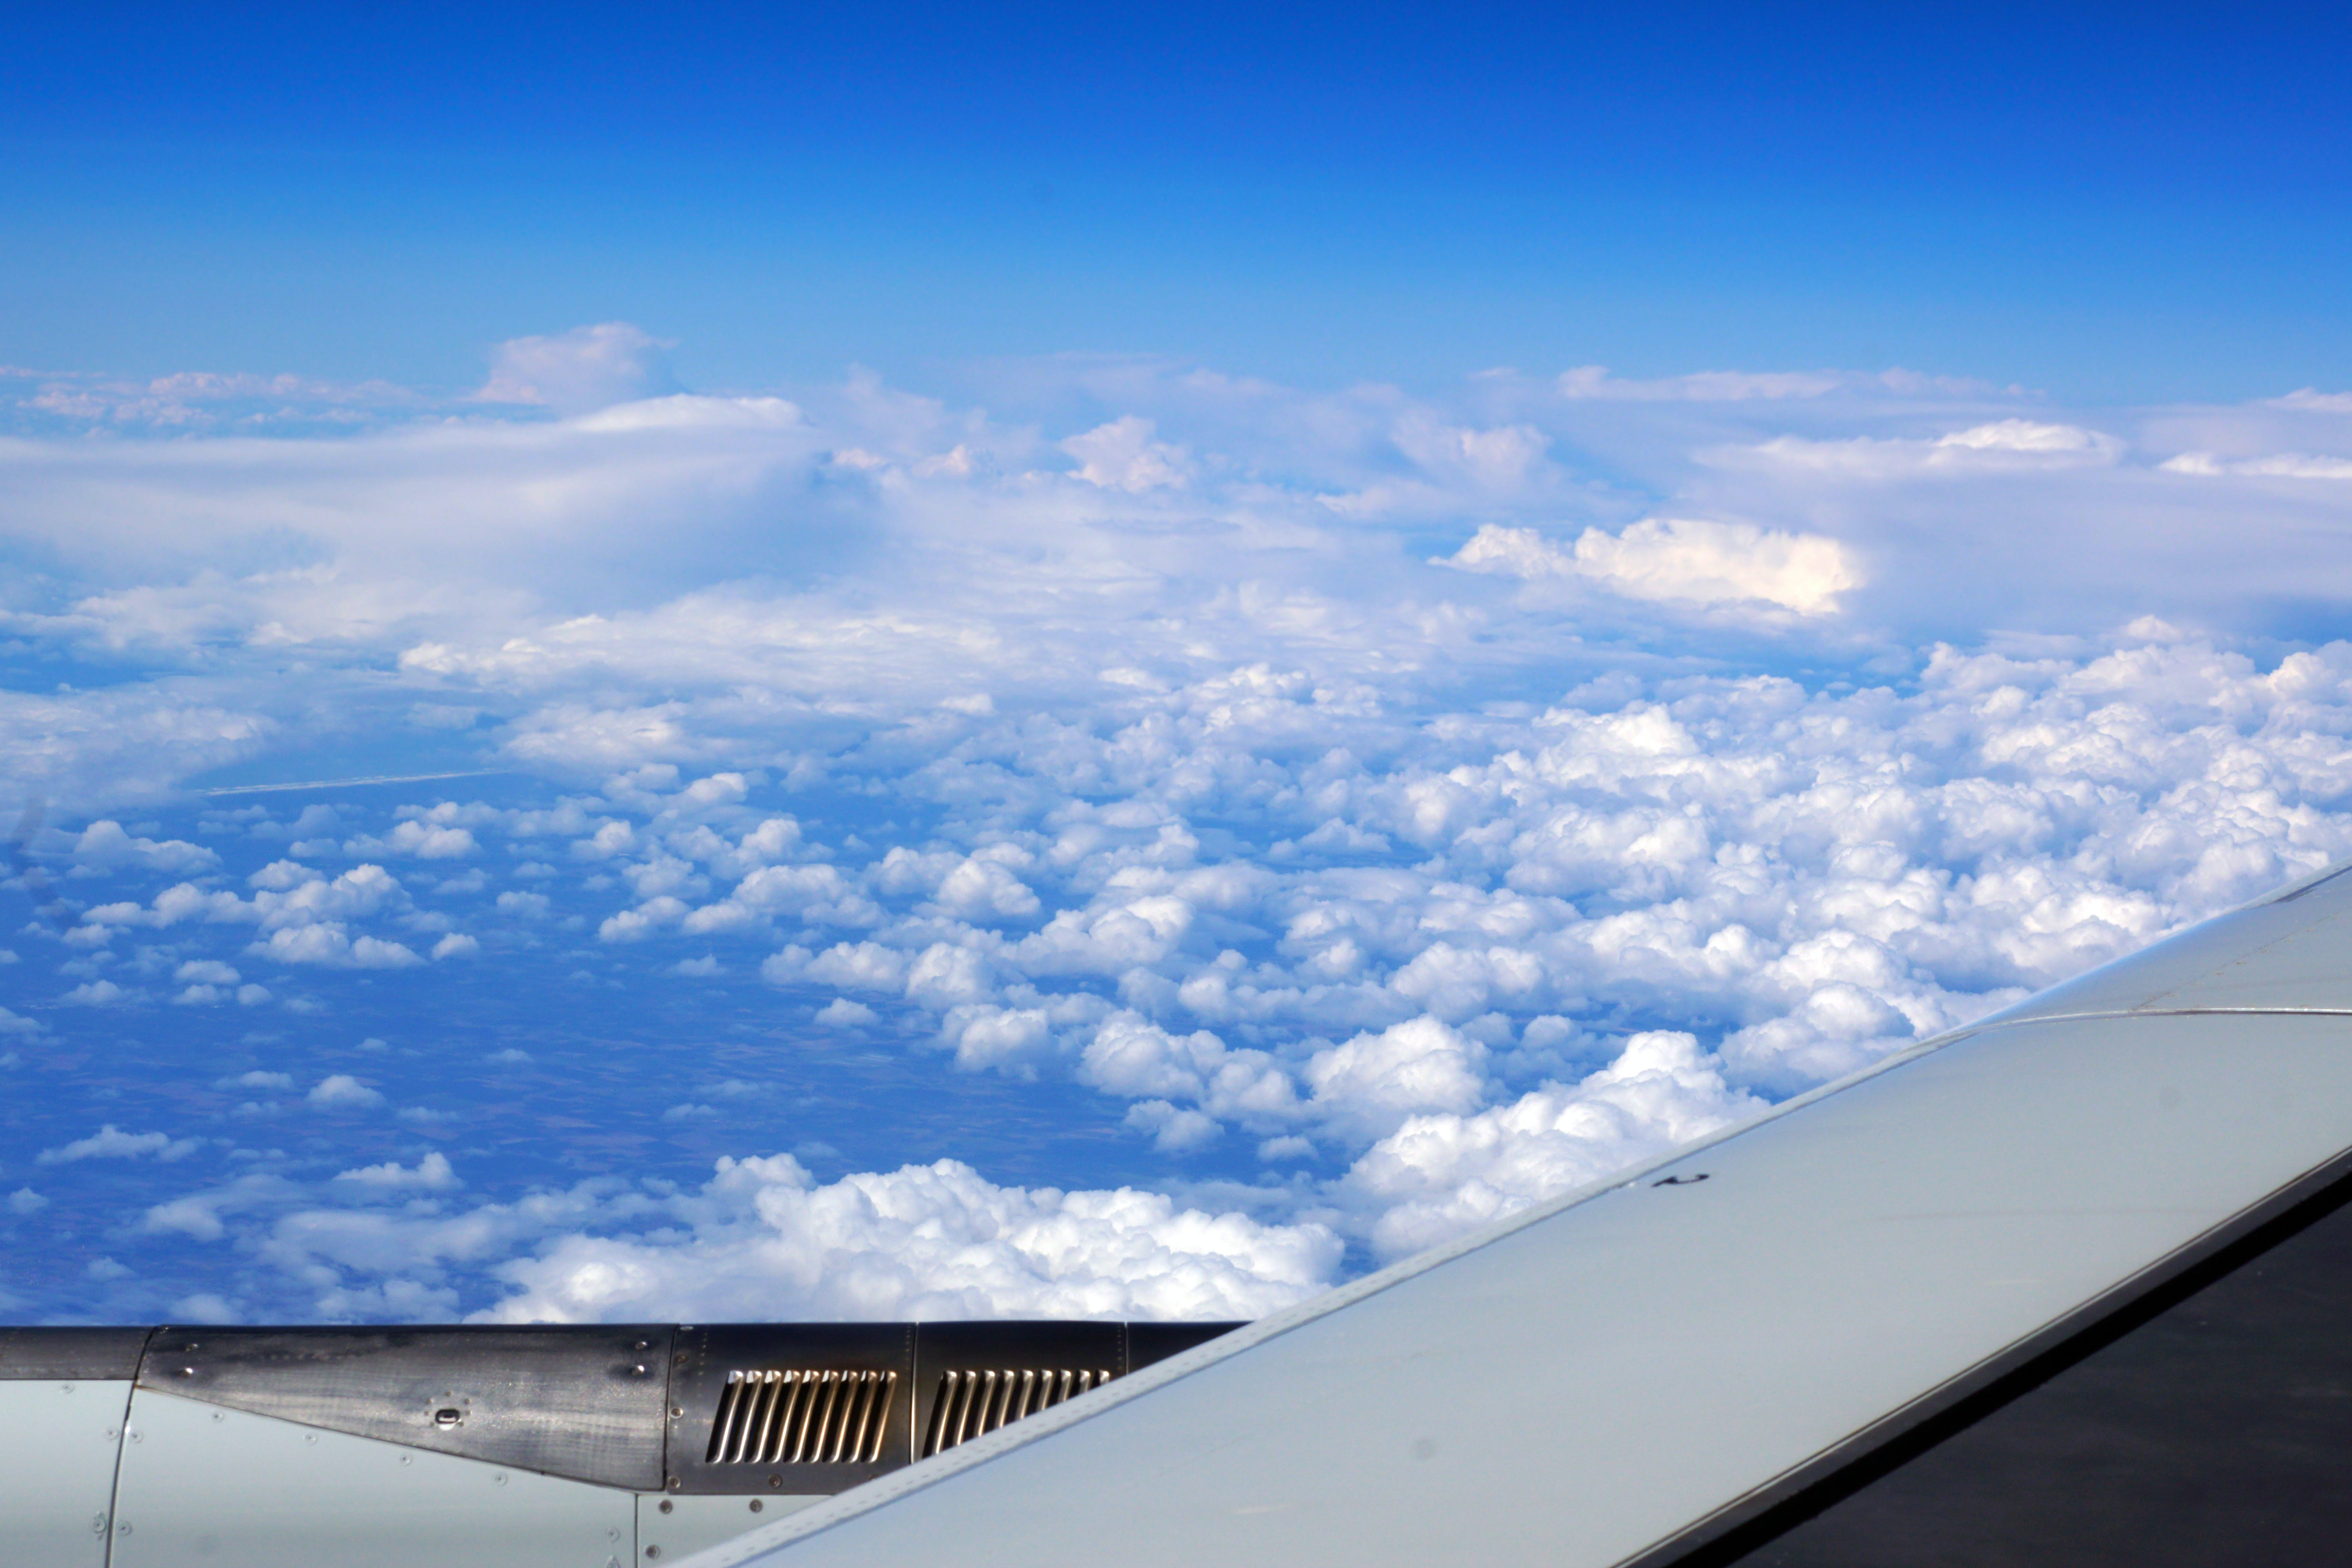 Free stock photo of blue sky, clouds, cotton clouds, flight